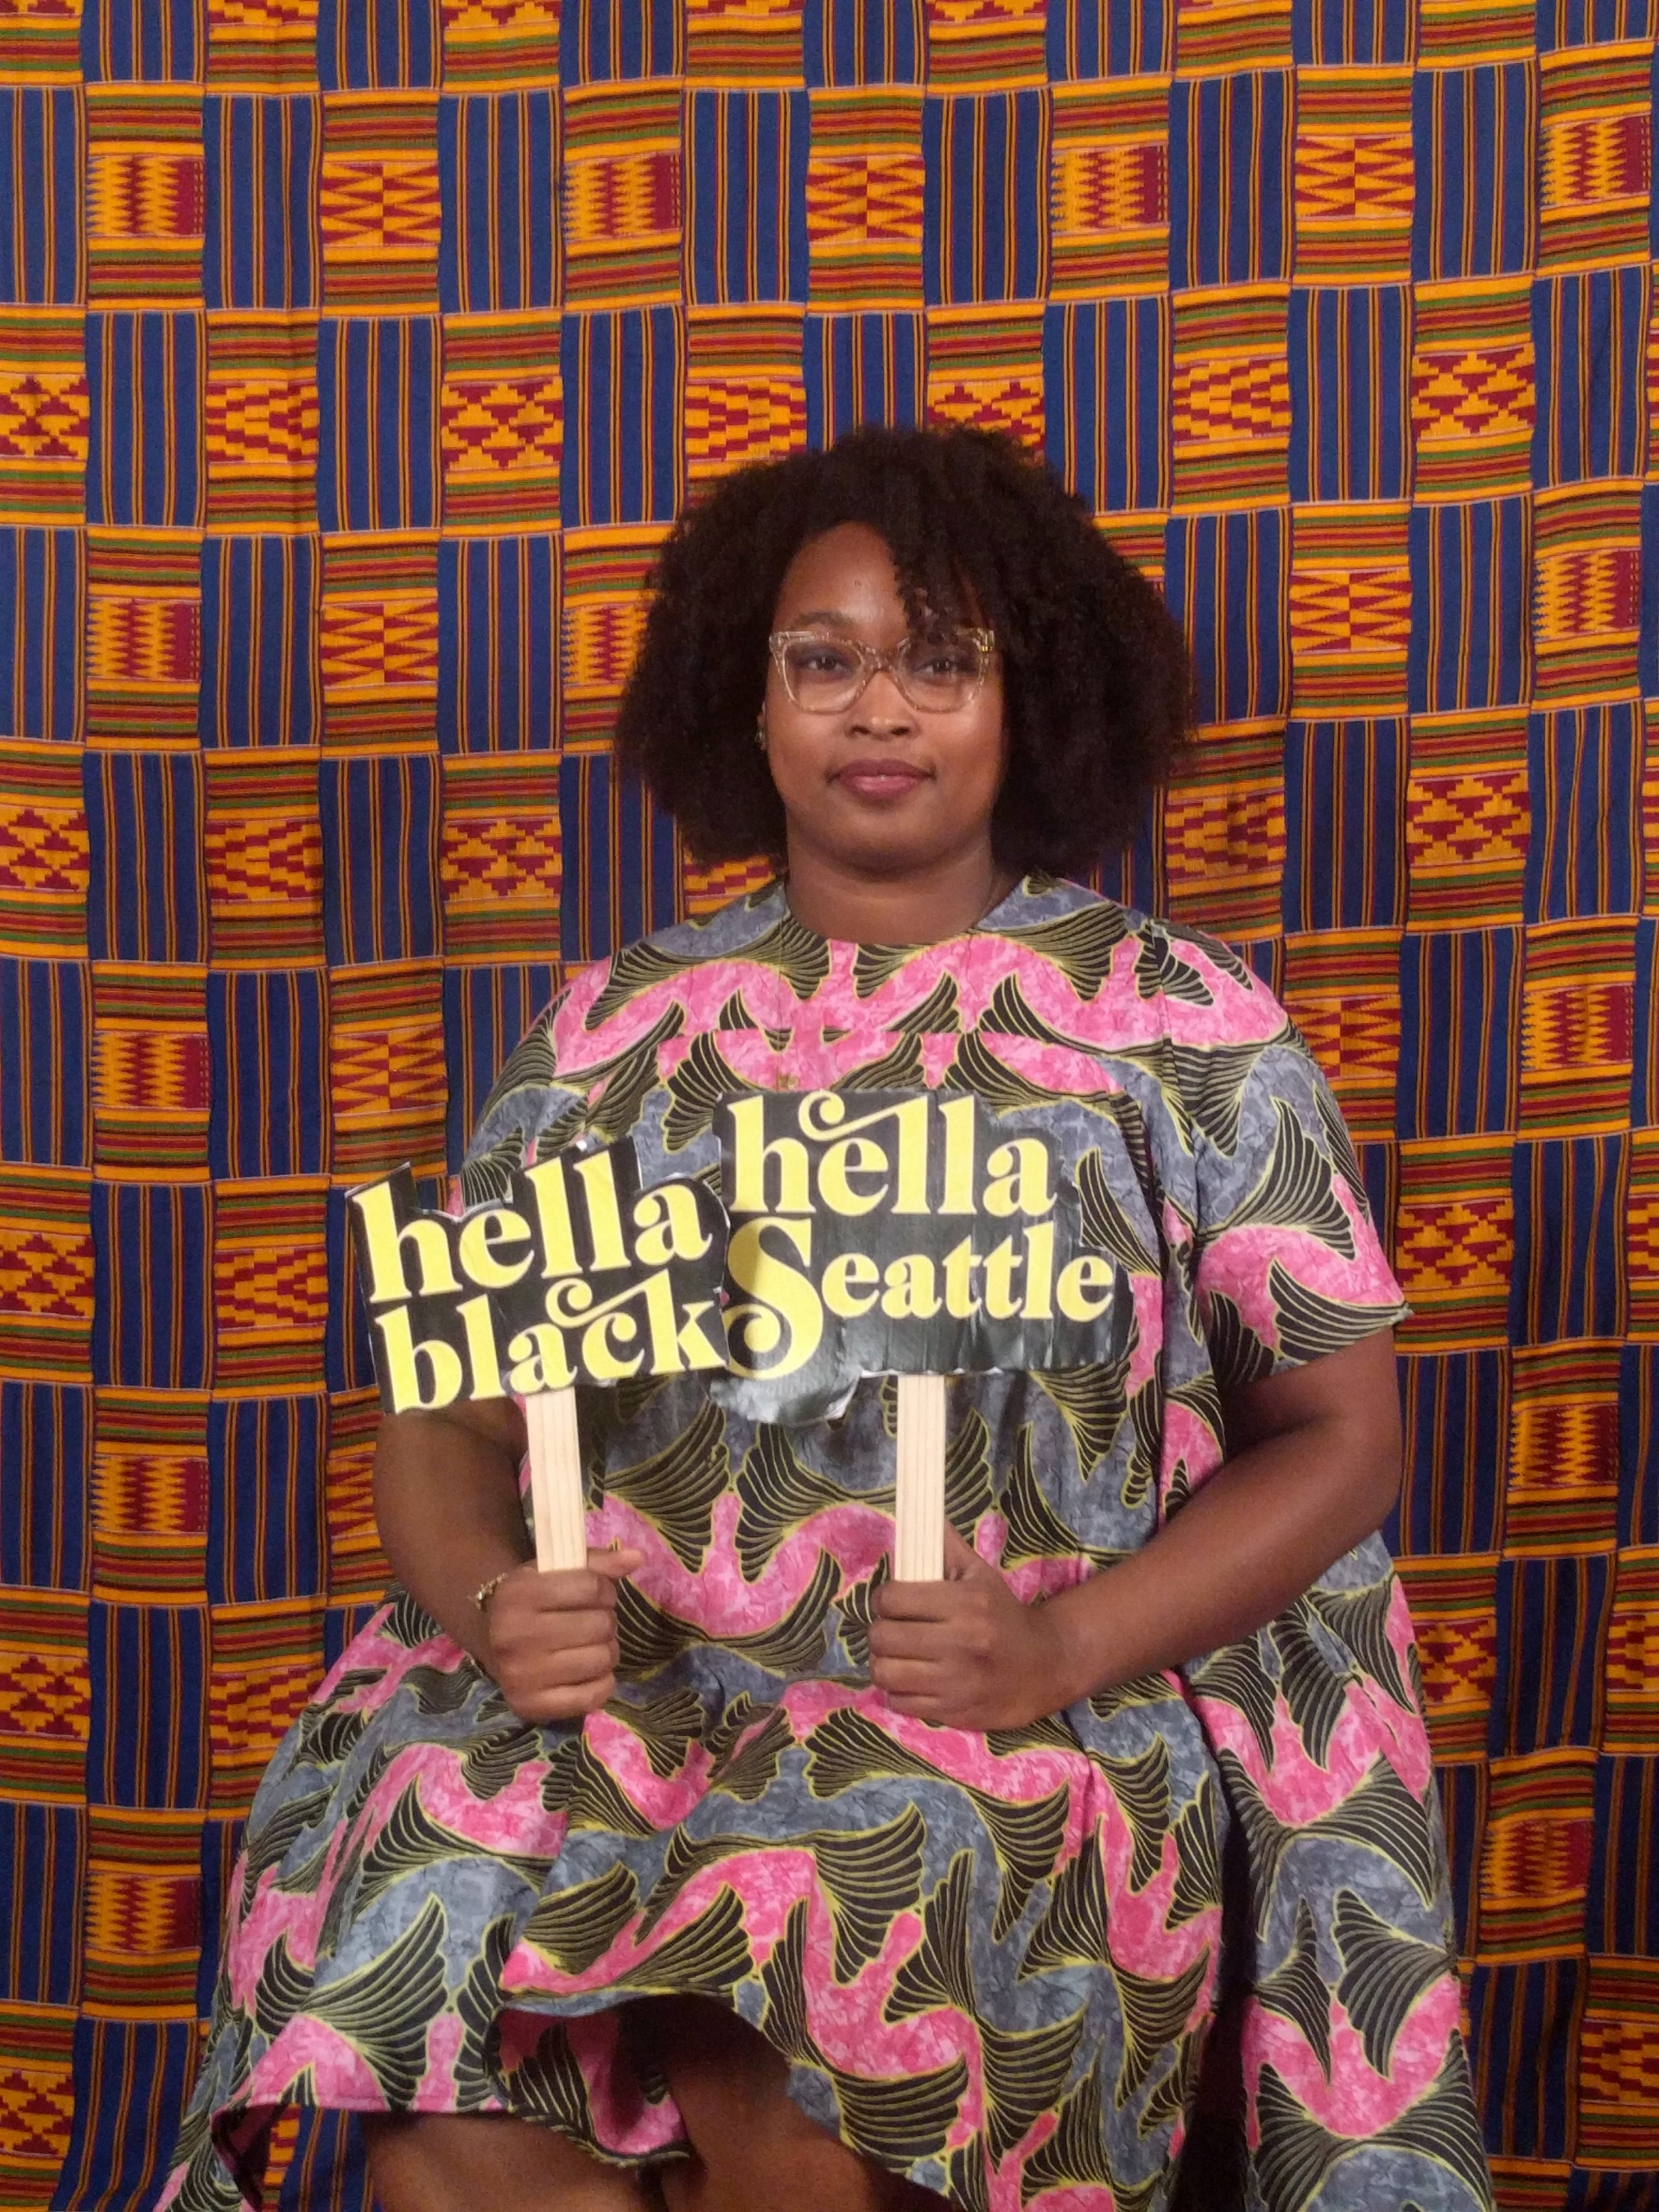 Color photograph of Seattle artist, the monarq posed in front of a quilted background.